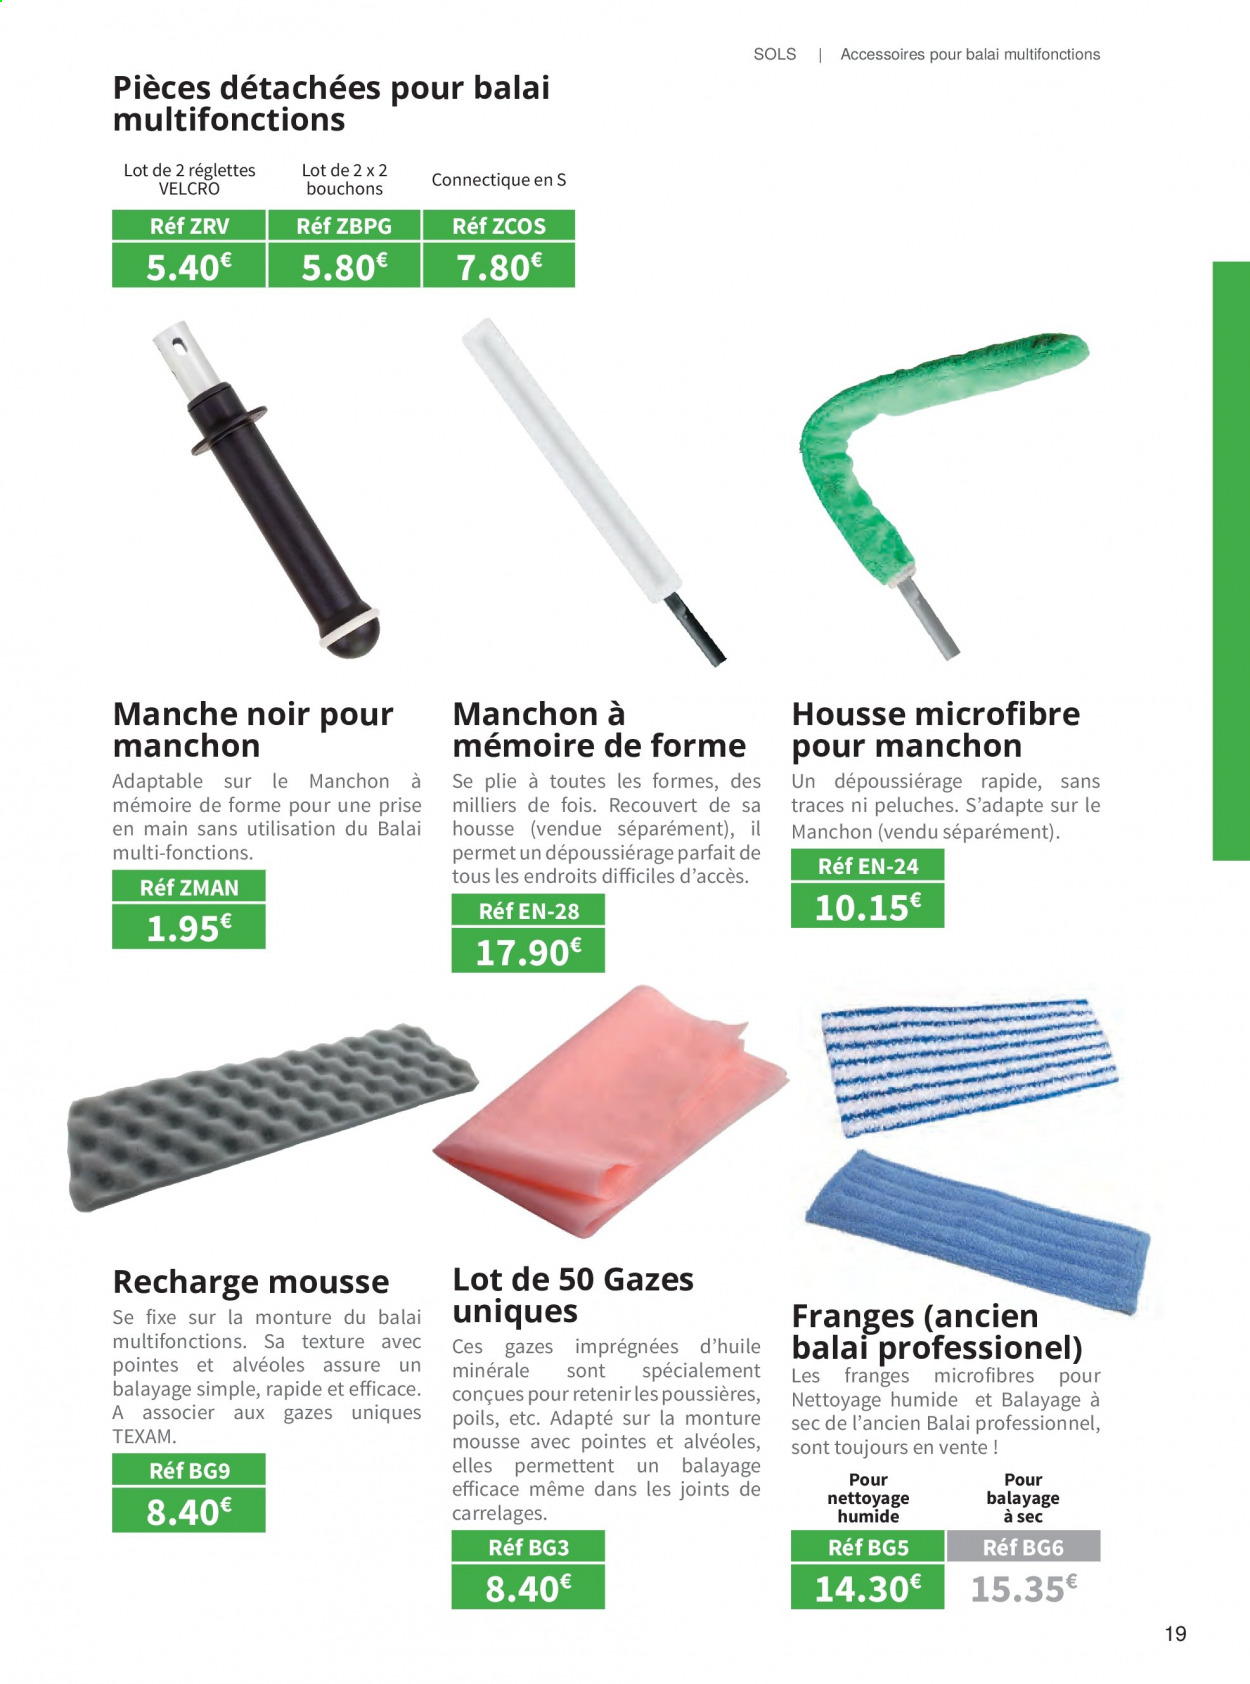 Catalogue TEXAM. Page 19.